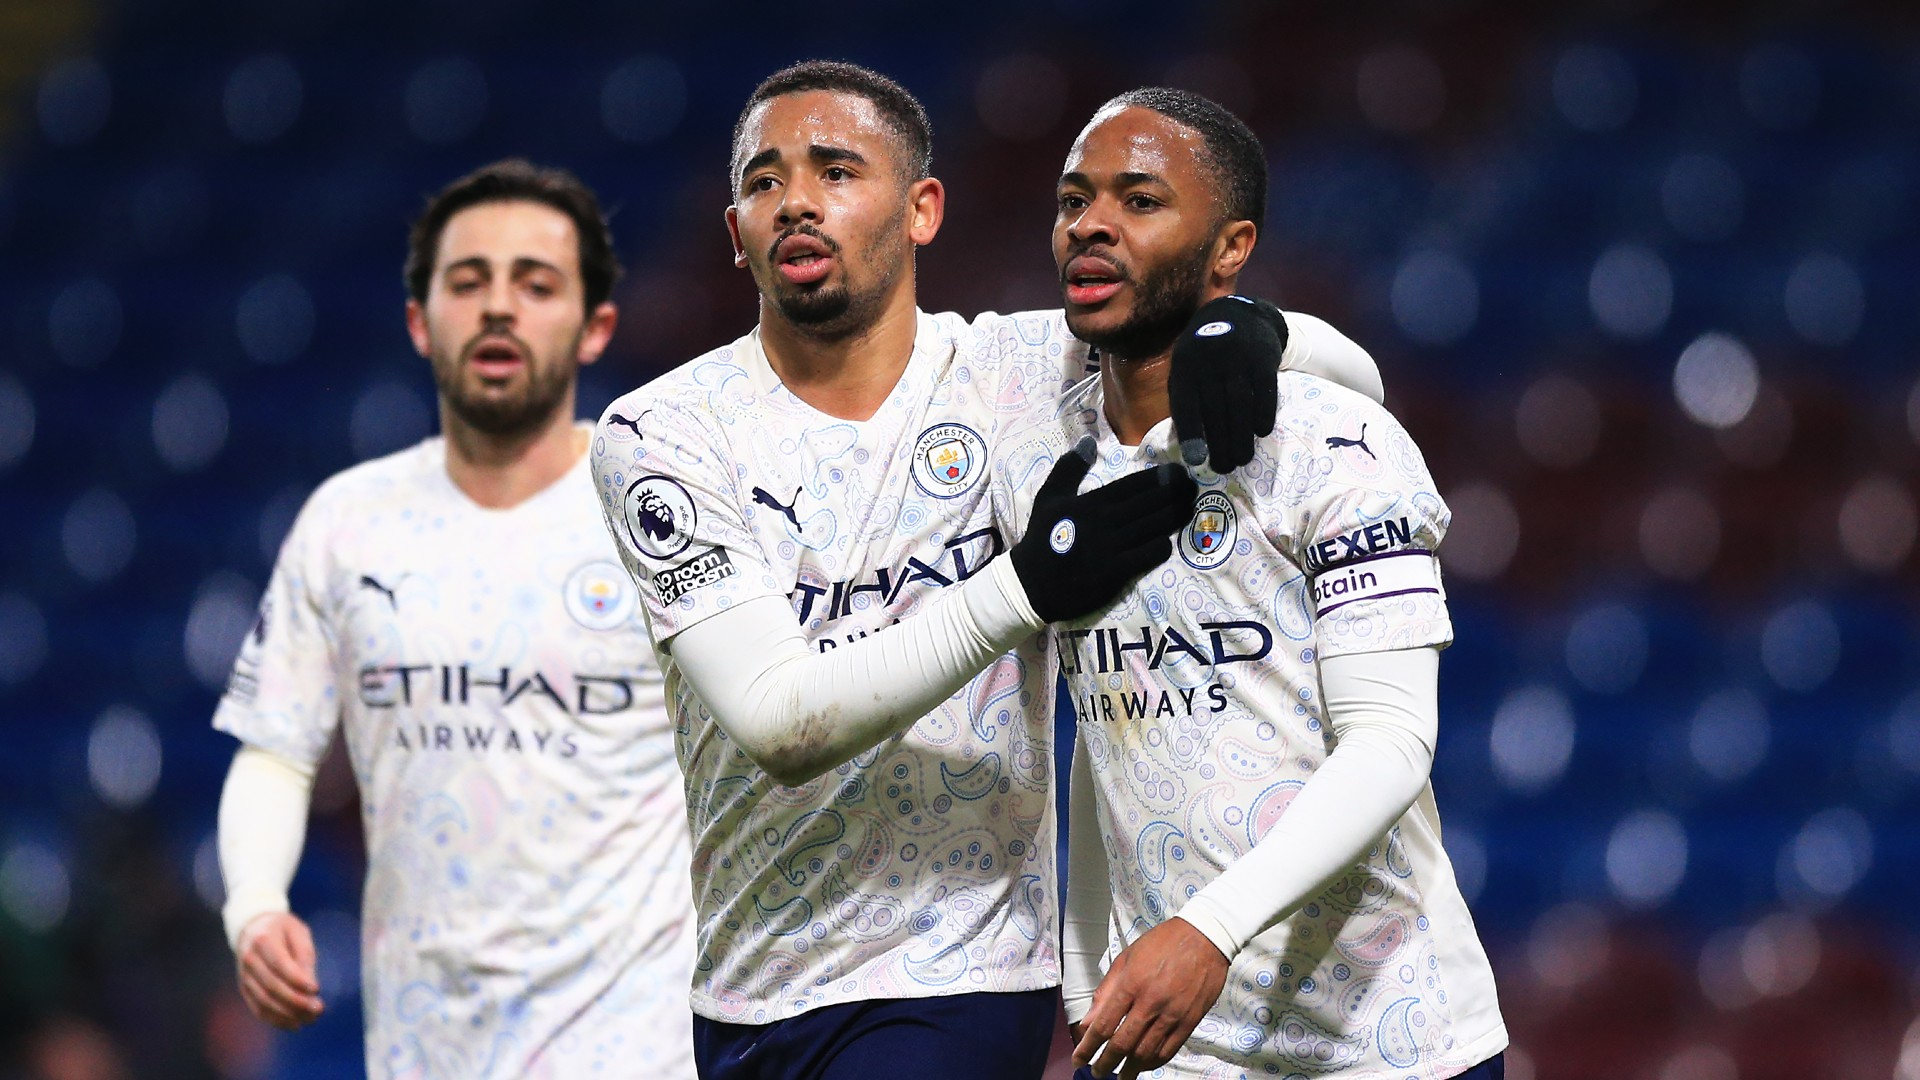 Burnley 0-2 Manchester City: Jesus and Sterling on target as leaders march on